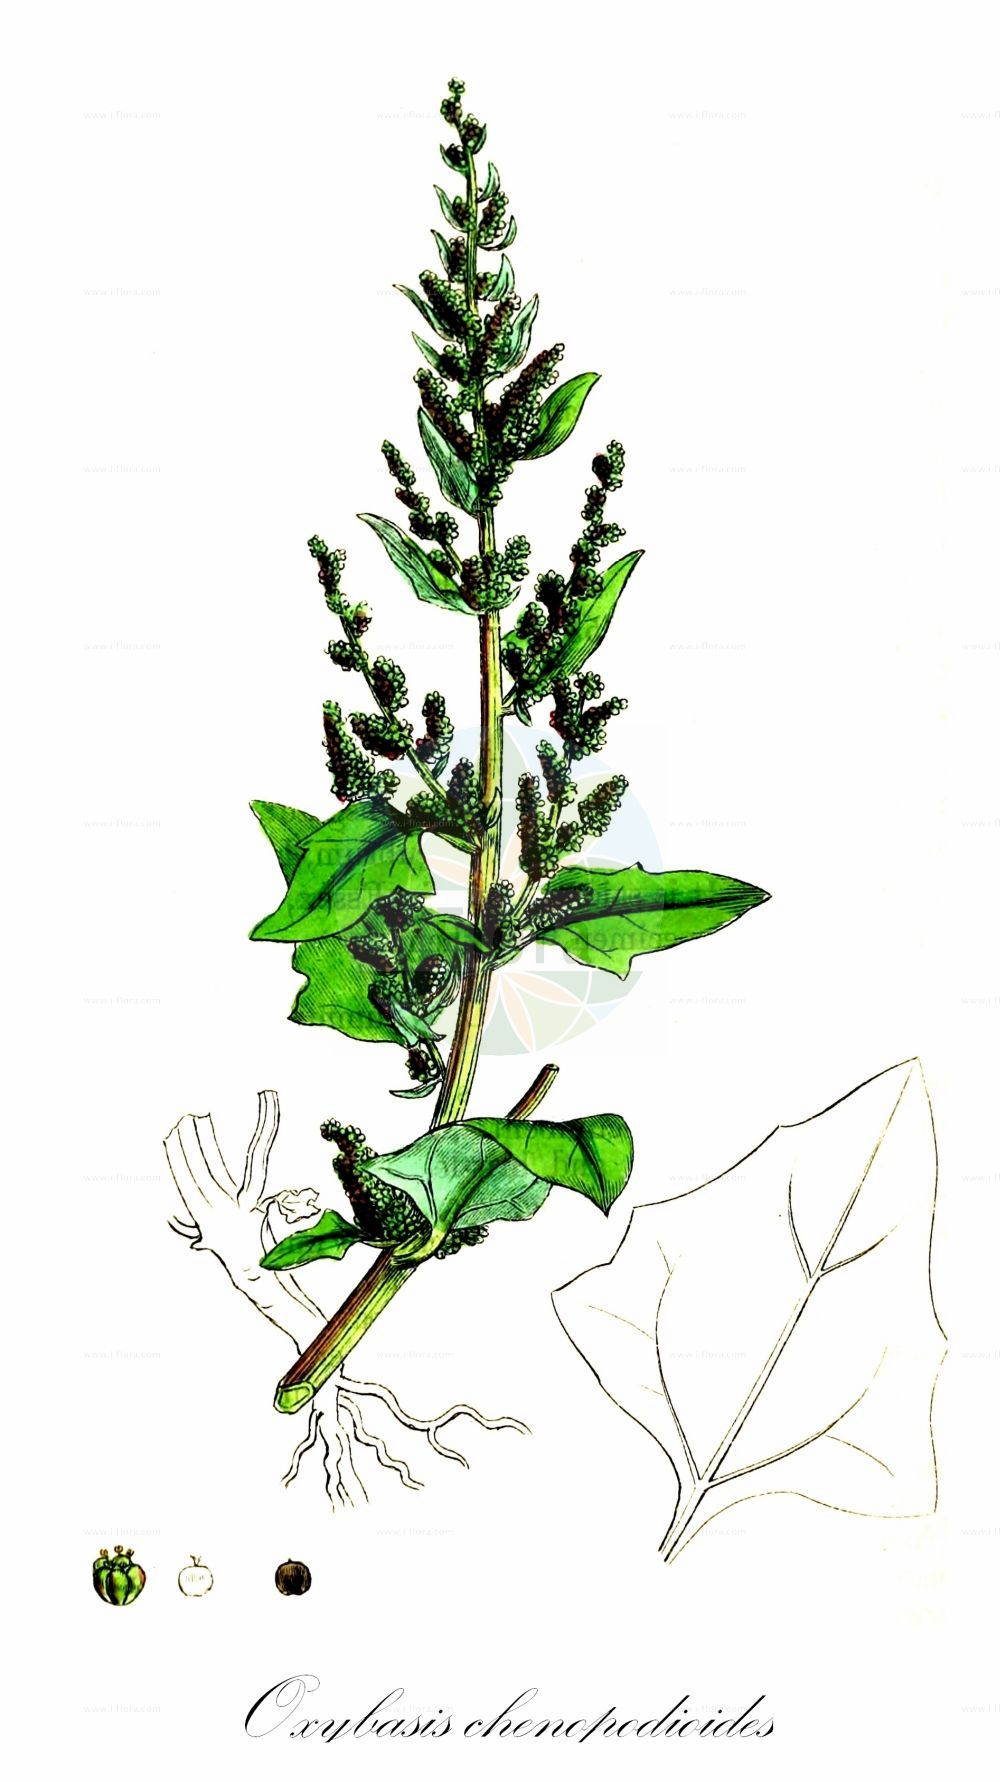 Historische Abbildung von Oxybasis chenopodioides (Dickblaettriger Gaensefuss - Saltmarsh Goosefoot). Das Bild zeigt Blatt, Bluete, Frucht und Same. ---- Historical Drawing of Oxybasis chenopodioides (Dickblaettriger Gaensefuss - Saltmarsh Goosefoot).The image is showing leaf, flower, fruit and seed.(Oxybasis chenopodioides,Dickblaettriger Gaensefuss,Saltmarsh Goosefoot,Blitum chenopodioides,Chenopodium botryodes,Chenopodium chenopodioides,Chenopodium crassifolium,,Dickblatt-Gaensefuss,Low Goosefoot,Sea Goosefoot,Oxybasis,Amaranthaceae,Fuchsschwanzgewaechse,Pigweed family,Blatt,Bluete,Frucht,Same,leaf,flower,fruit,seed,Sowerby (1790-1813))